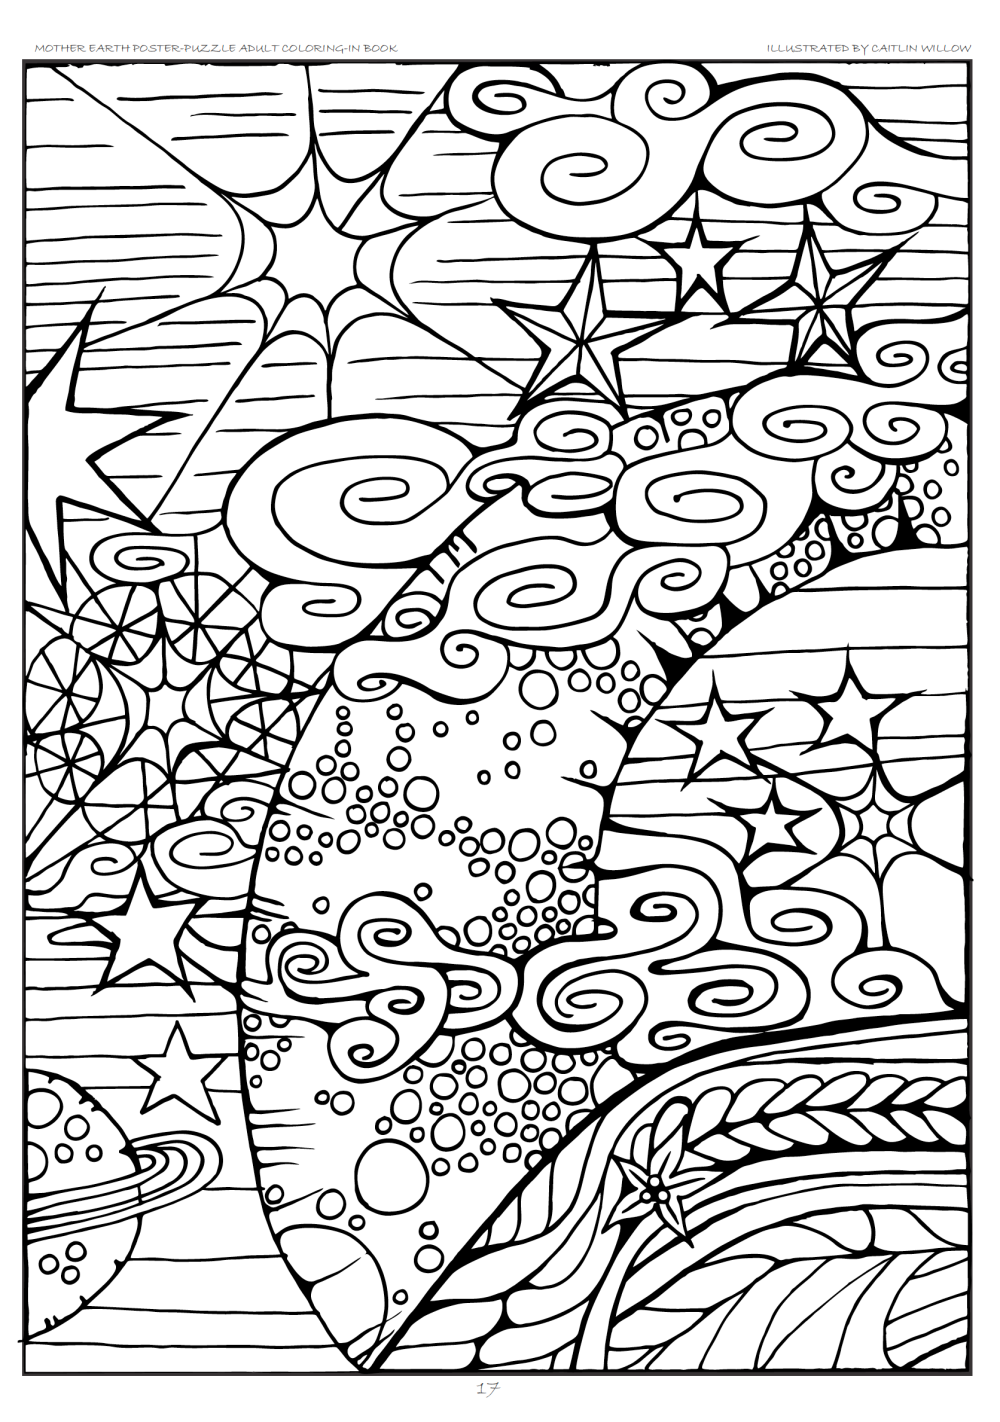 Free Coloring Page from Mother Earth Poster-Puzzle Adult Coloring-In Book. Bringing you back to nature and unlock your creativity. by Caitlin Willow Greyling